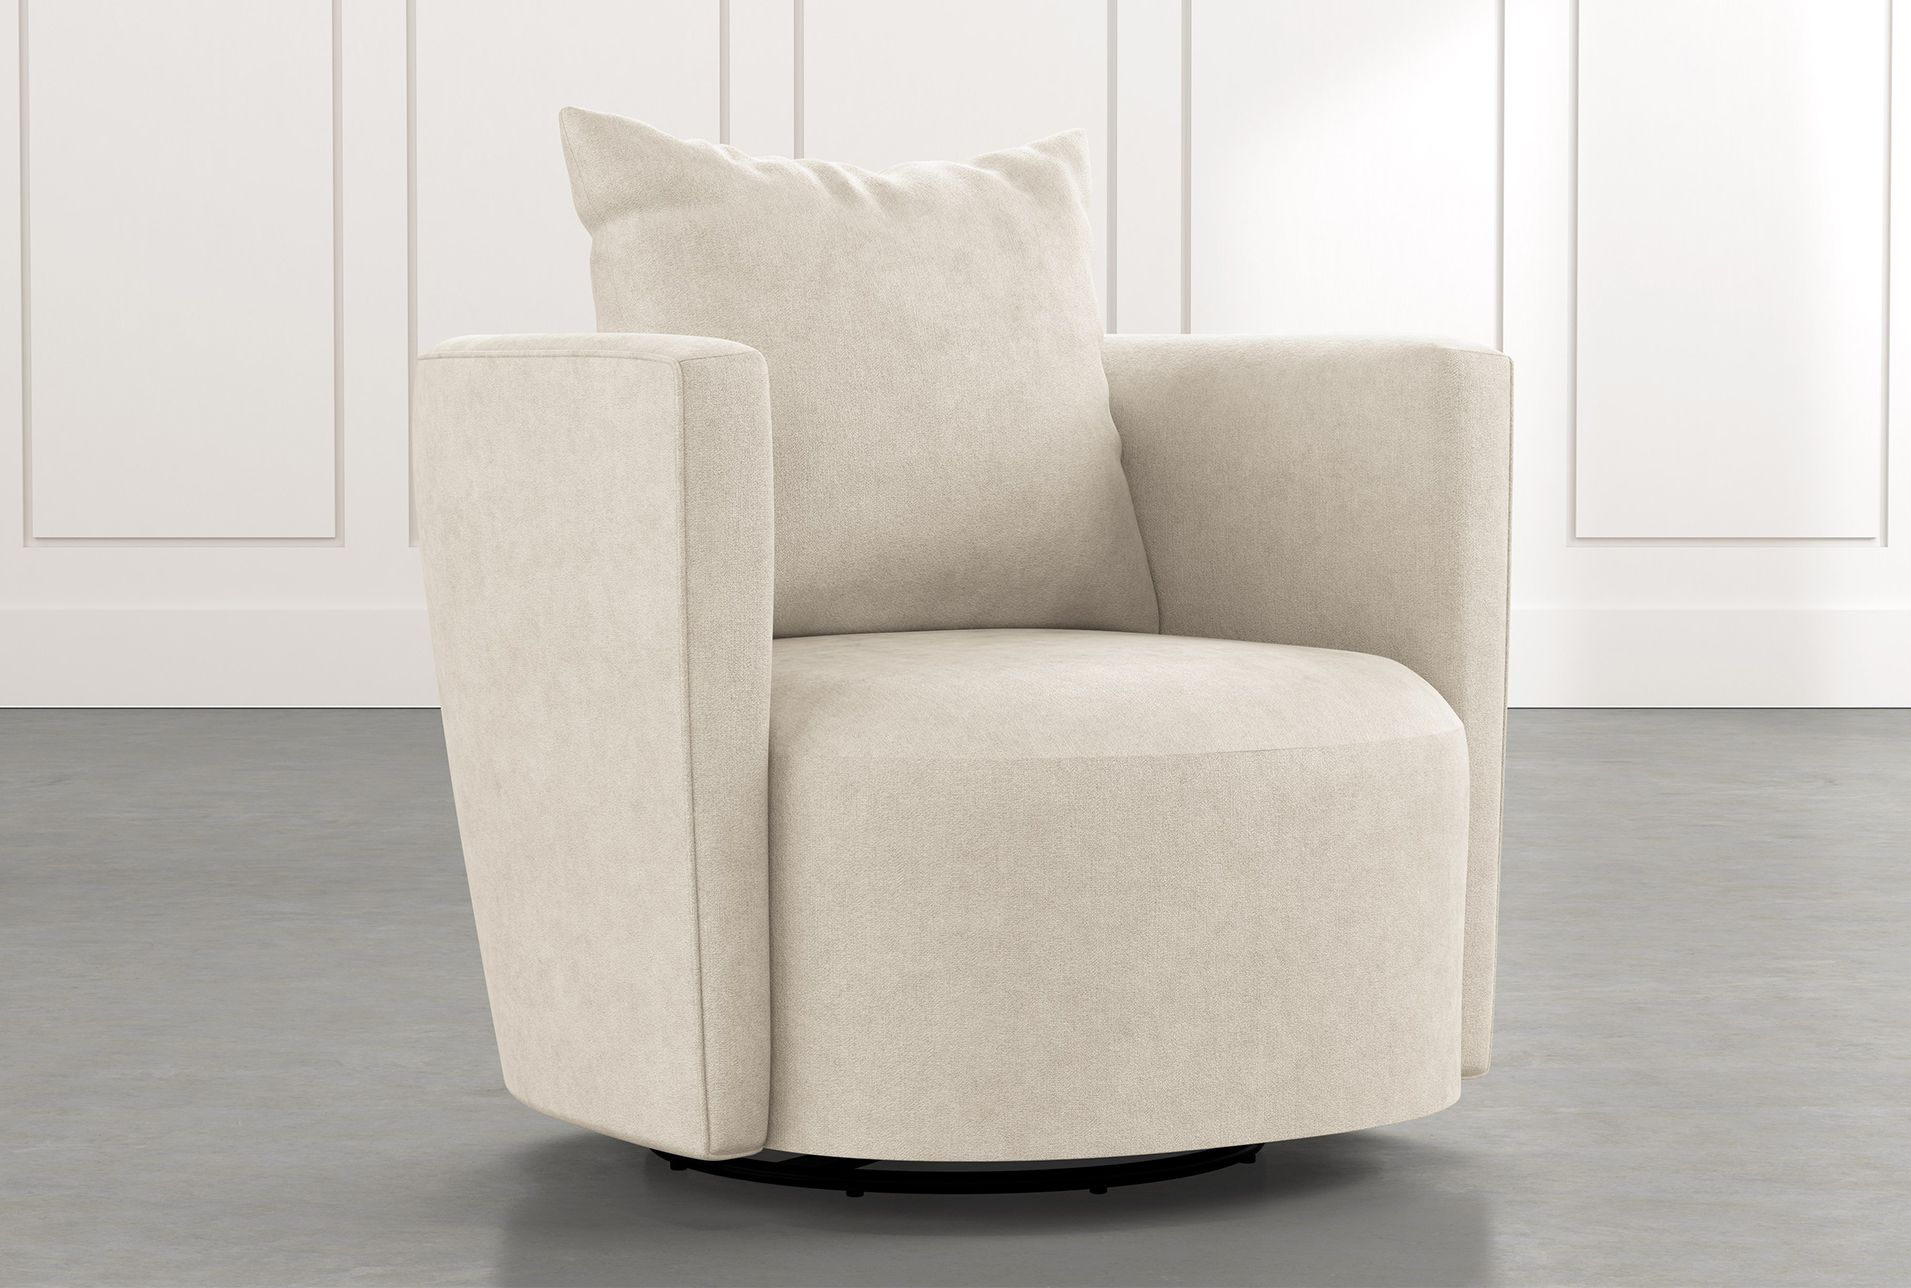 Twirl Beige Swivel Accent Chair In 2020 Swivel Accent Chair